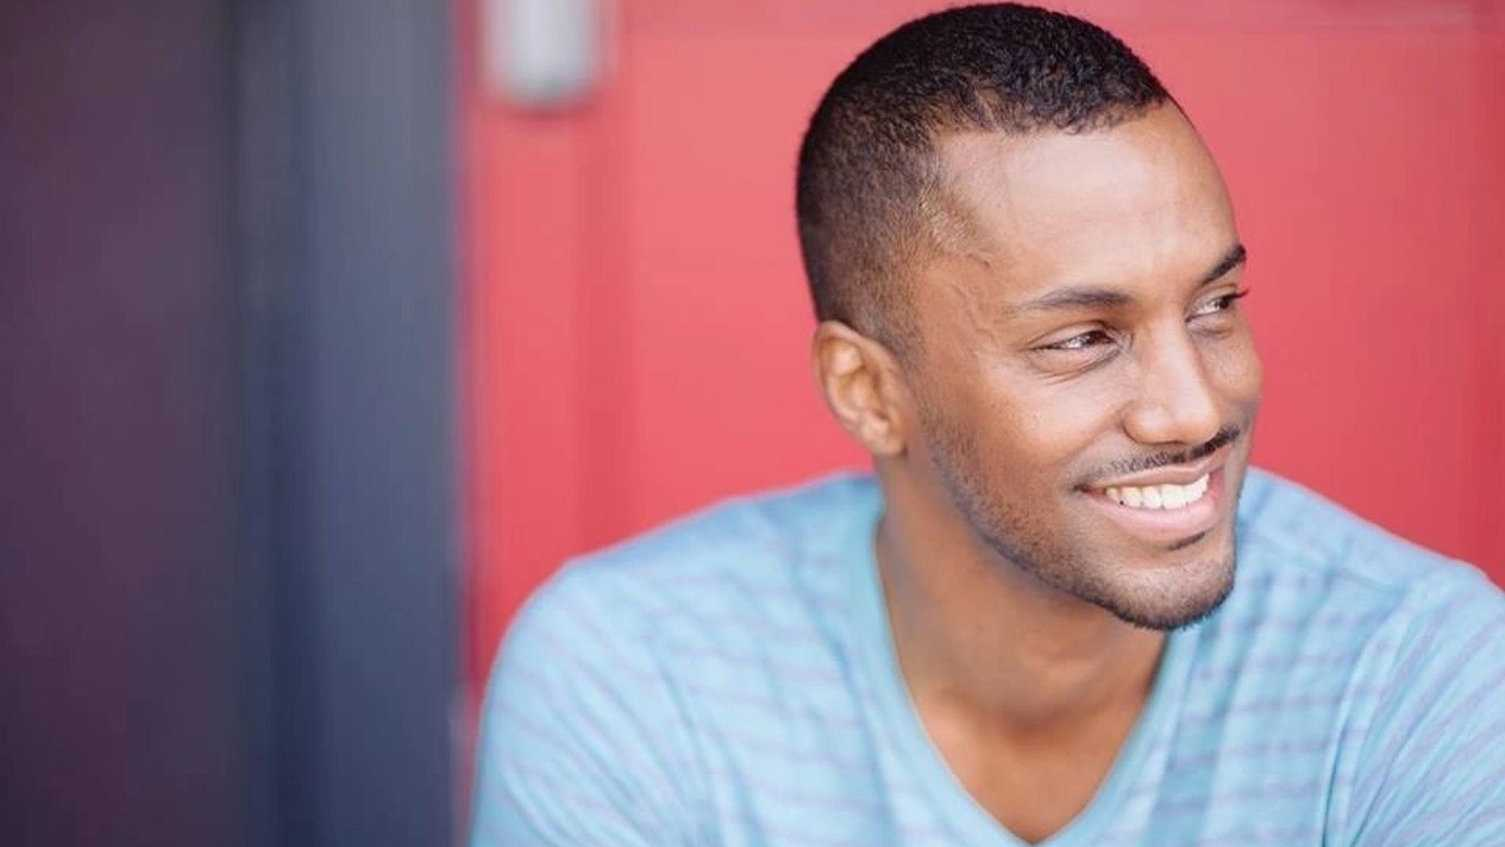 Darryl Stephens is a gay black actor who plays roles that challenge stereotypes